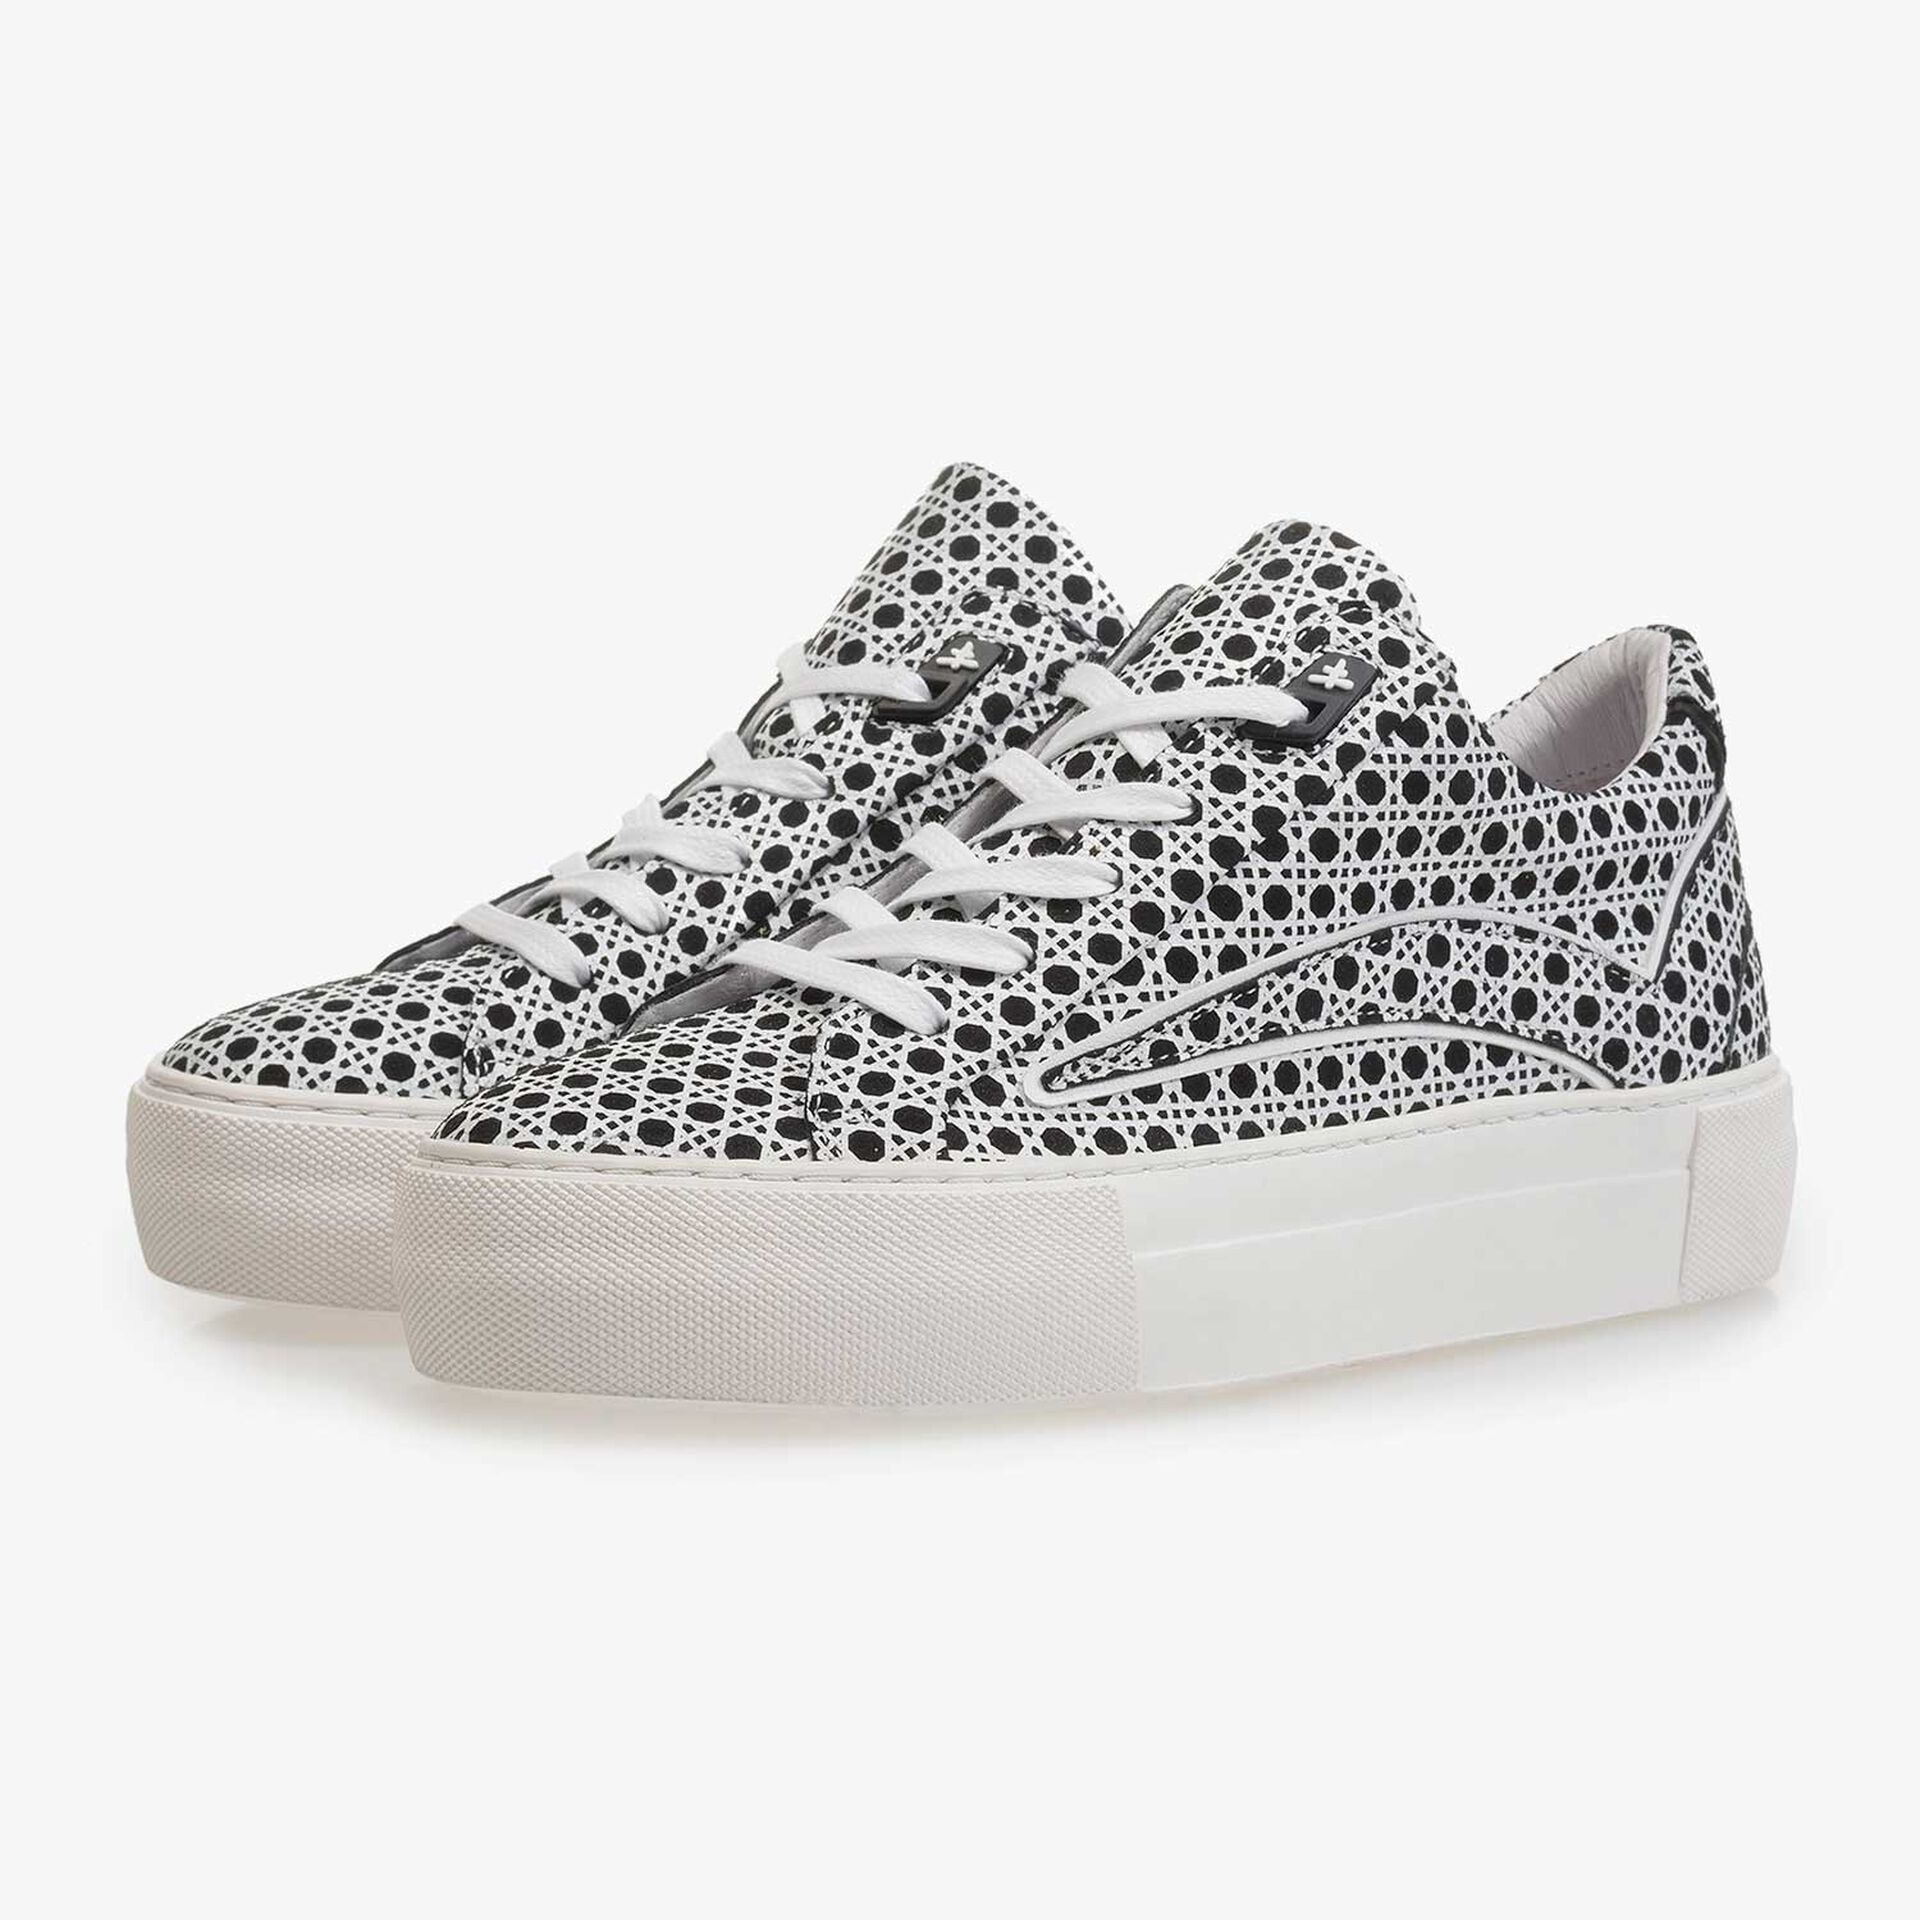 Black-and-white suede leather sneaker with print